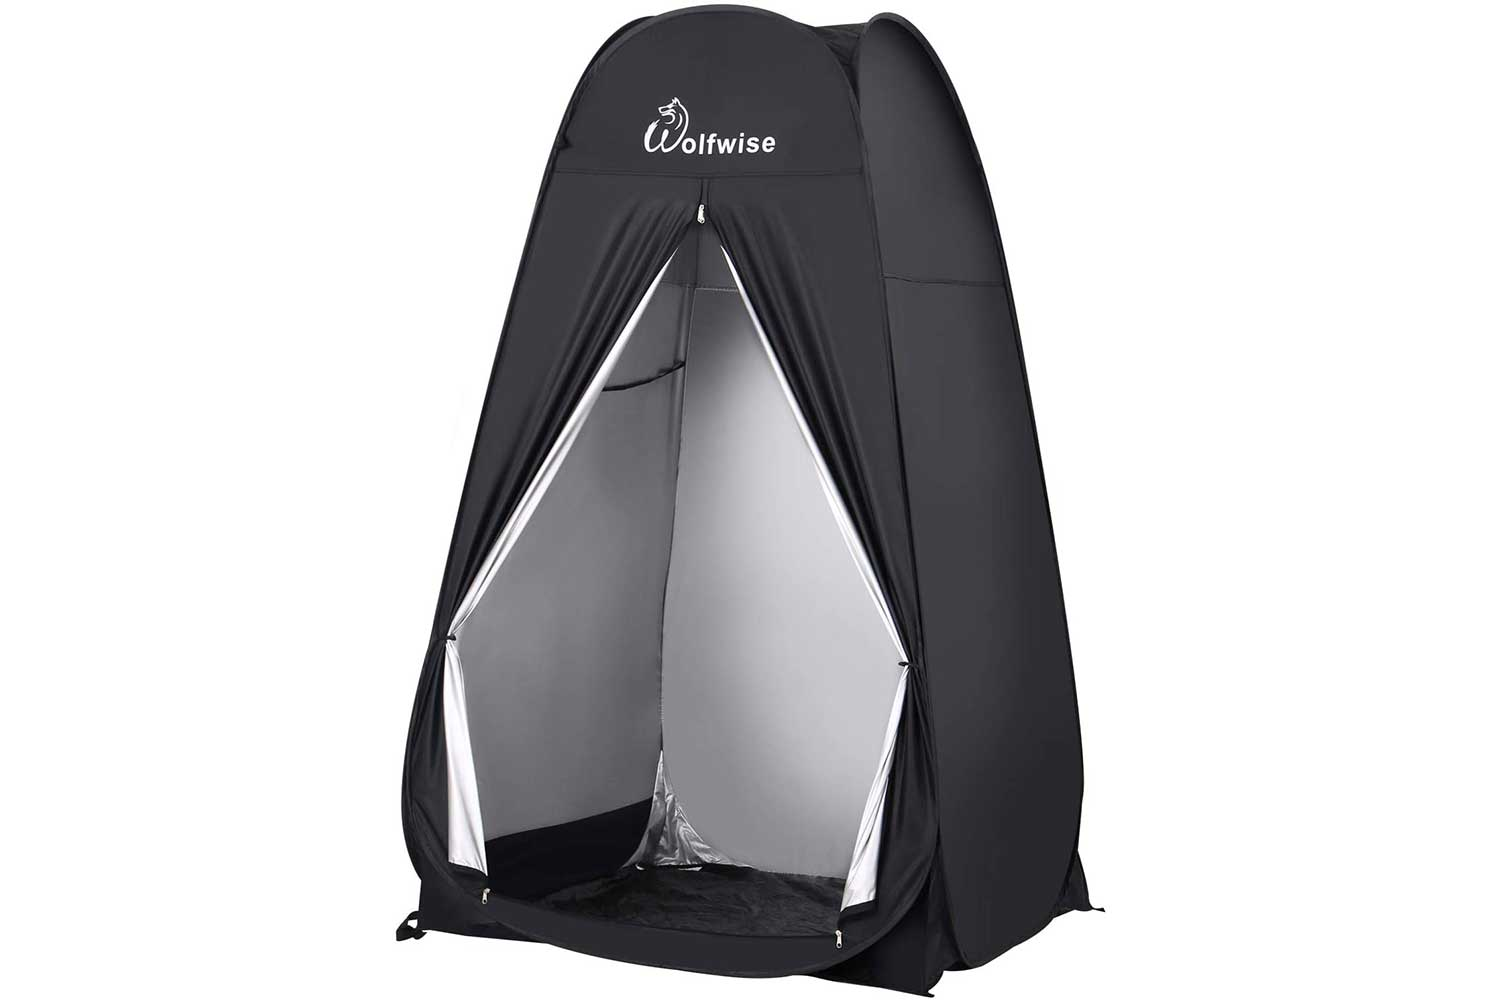 WolfWise 6.6FT Portable Pop Up Shower Privacy Tent